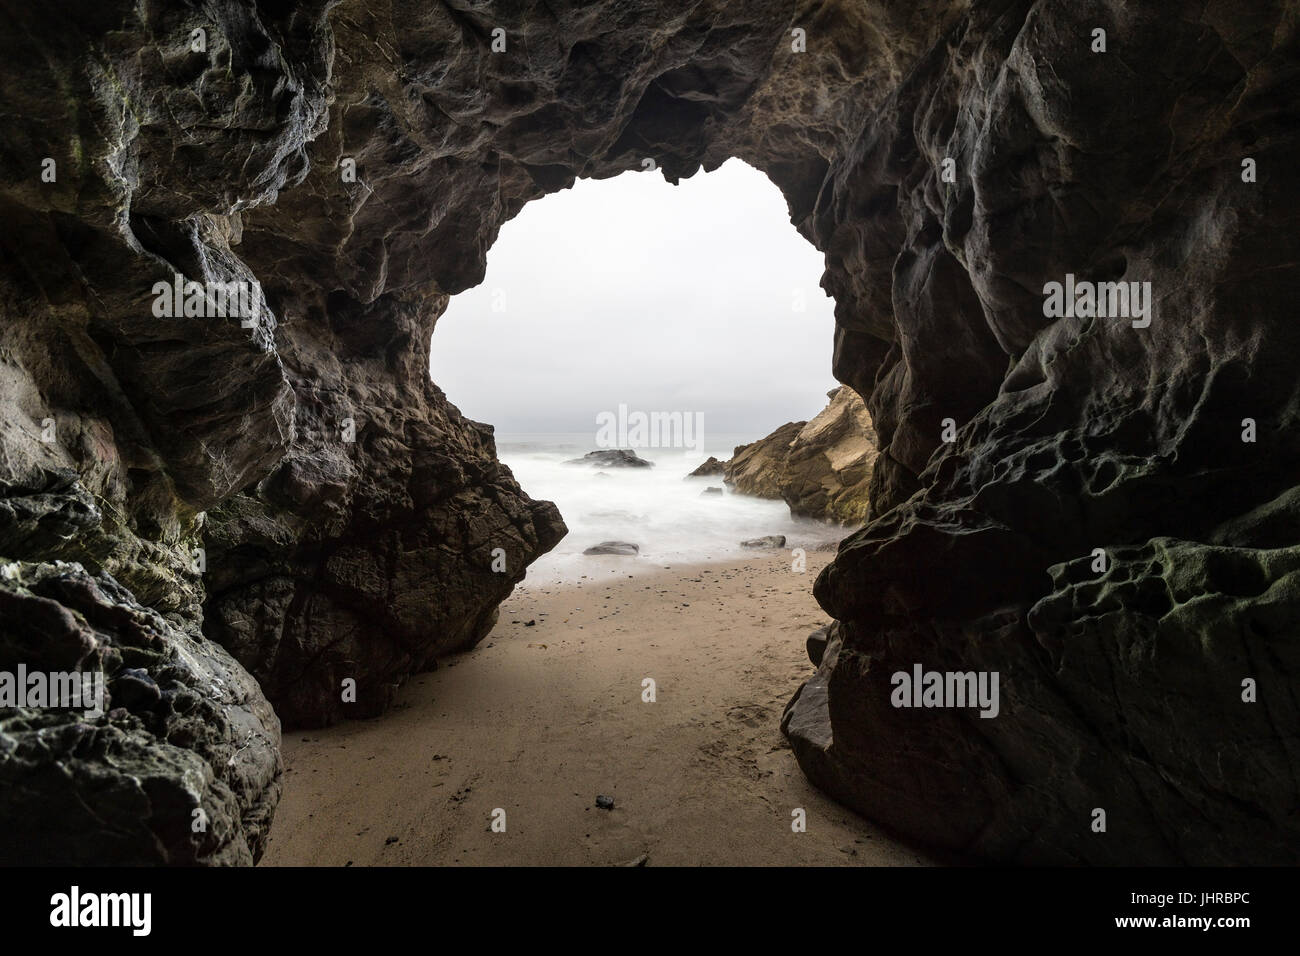 Sandy floor sea cave with motion blur water at Leo Carrillo State Beach in Malibu, California. - Stock Image